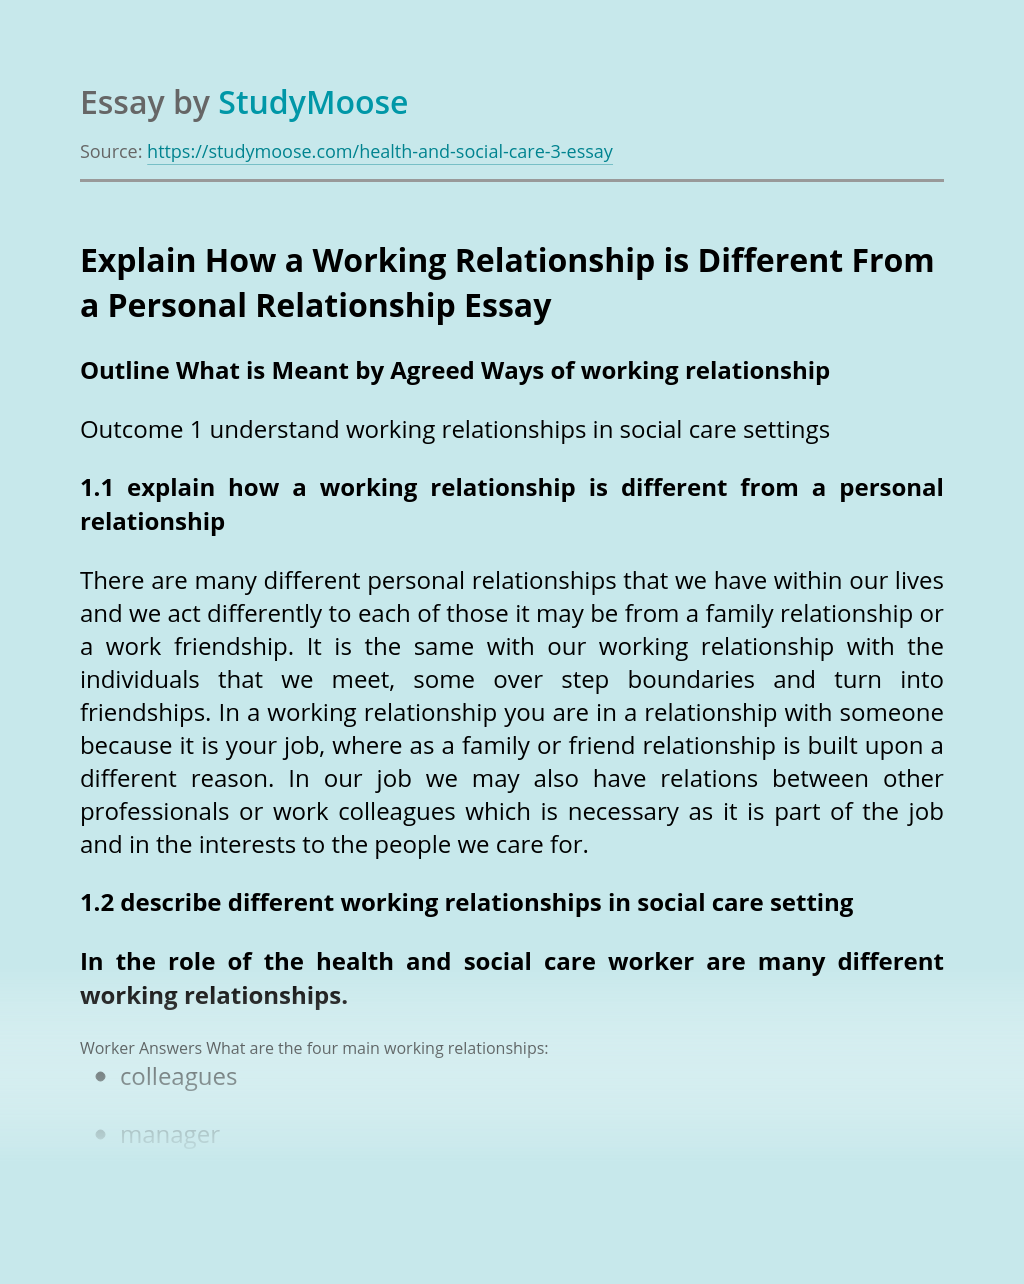 Explain How a Working Relationship is Different From a Personal Relationship